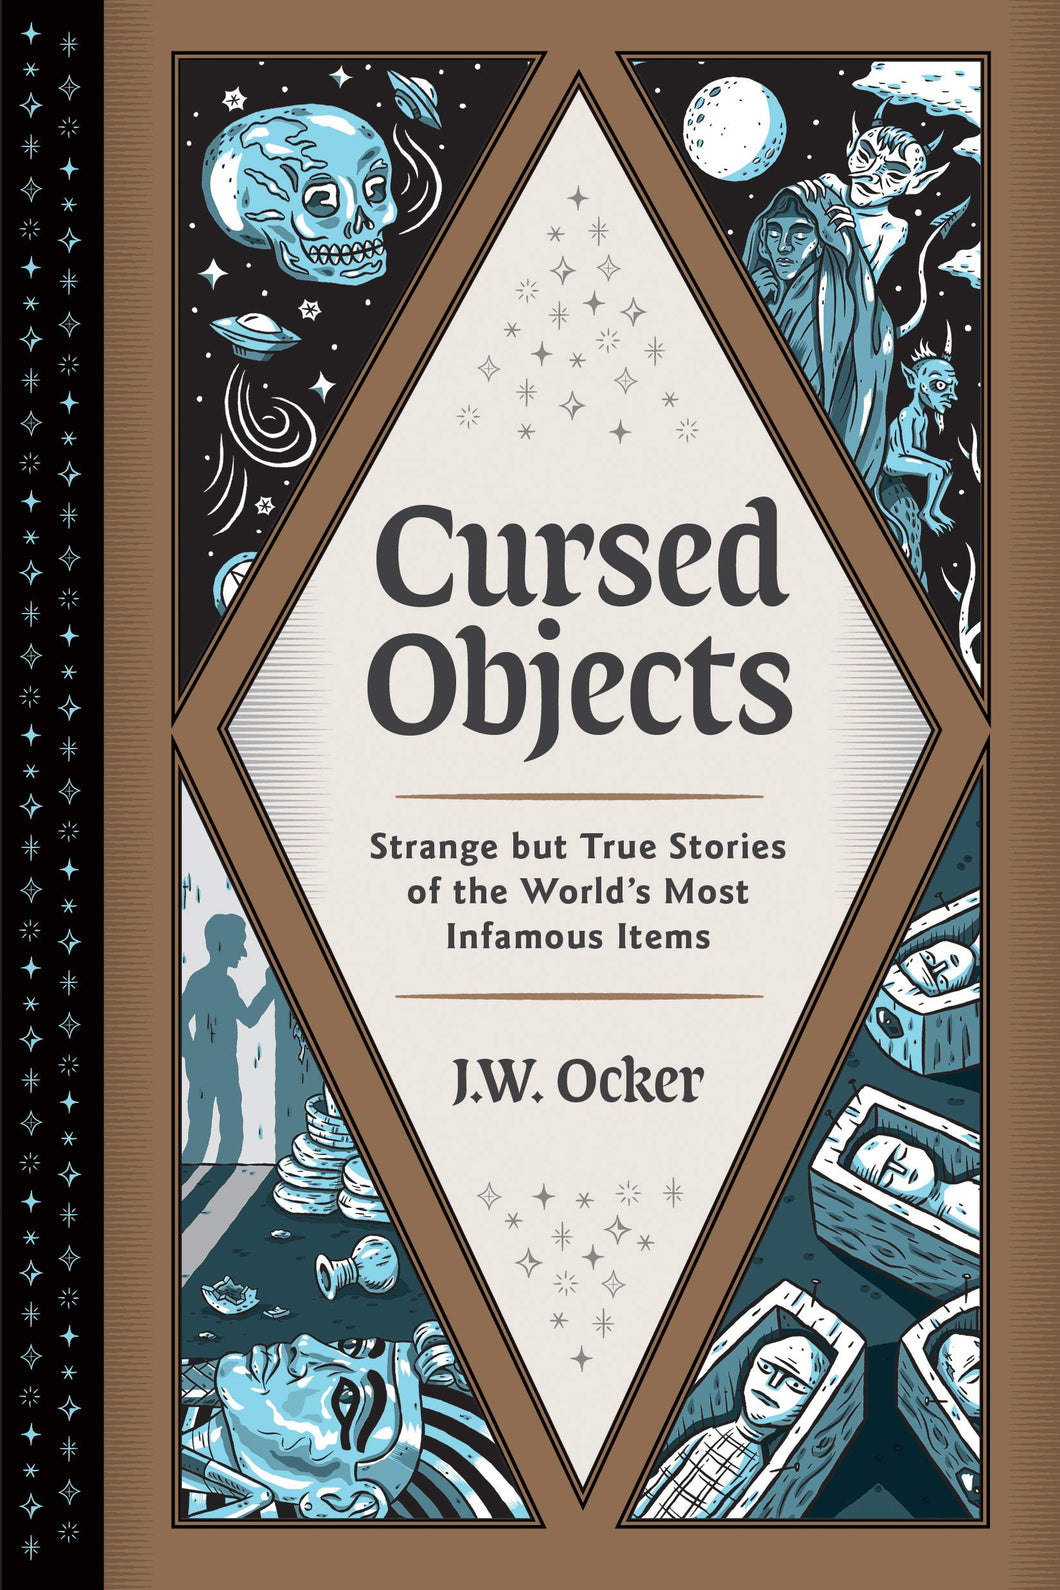 Cursed Objects - J.W. Ocker